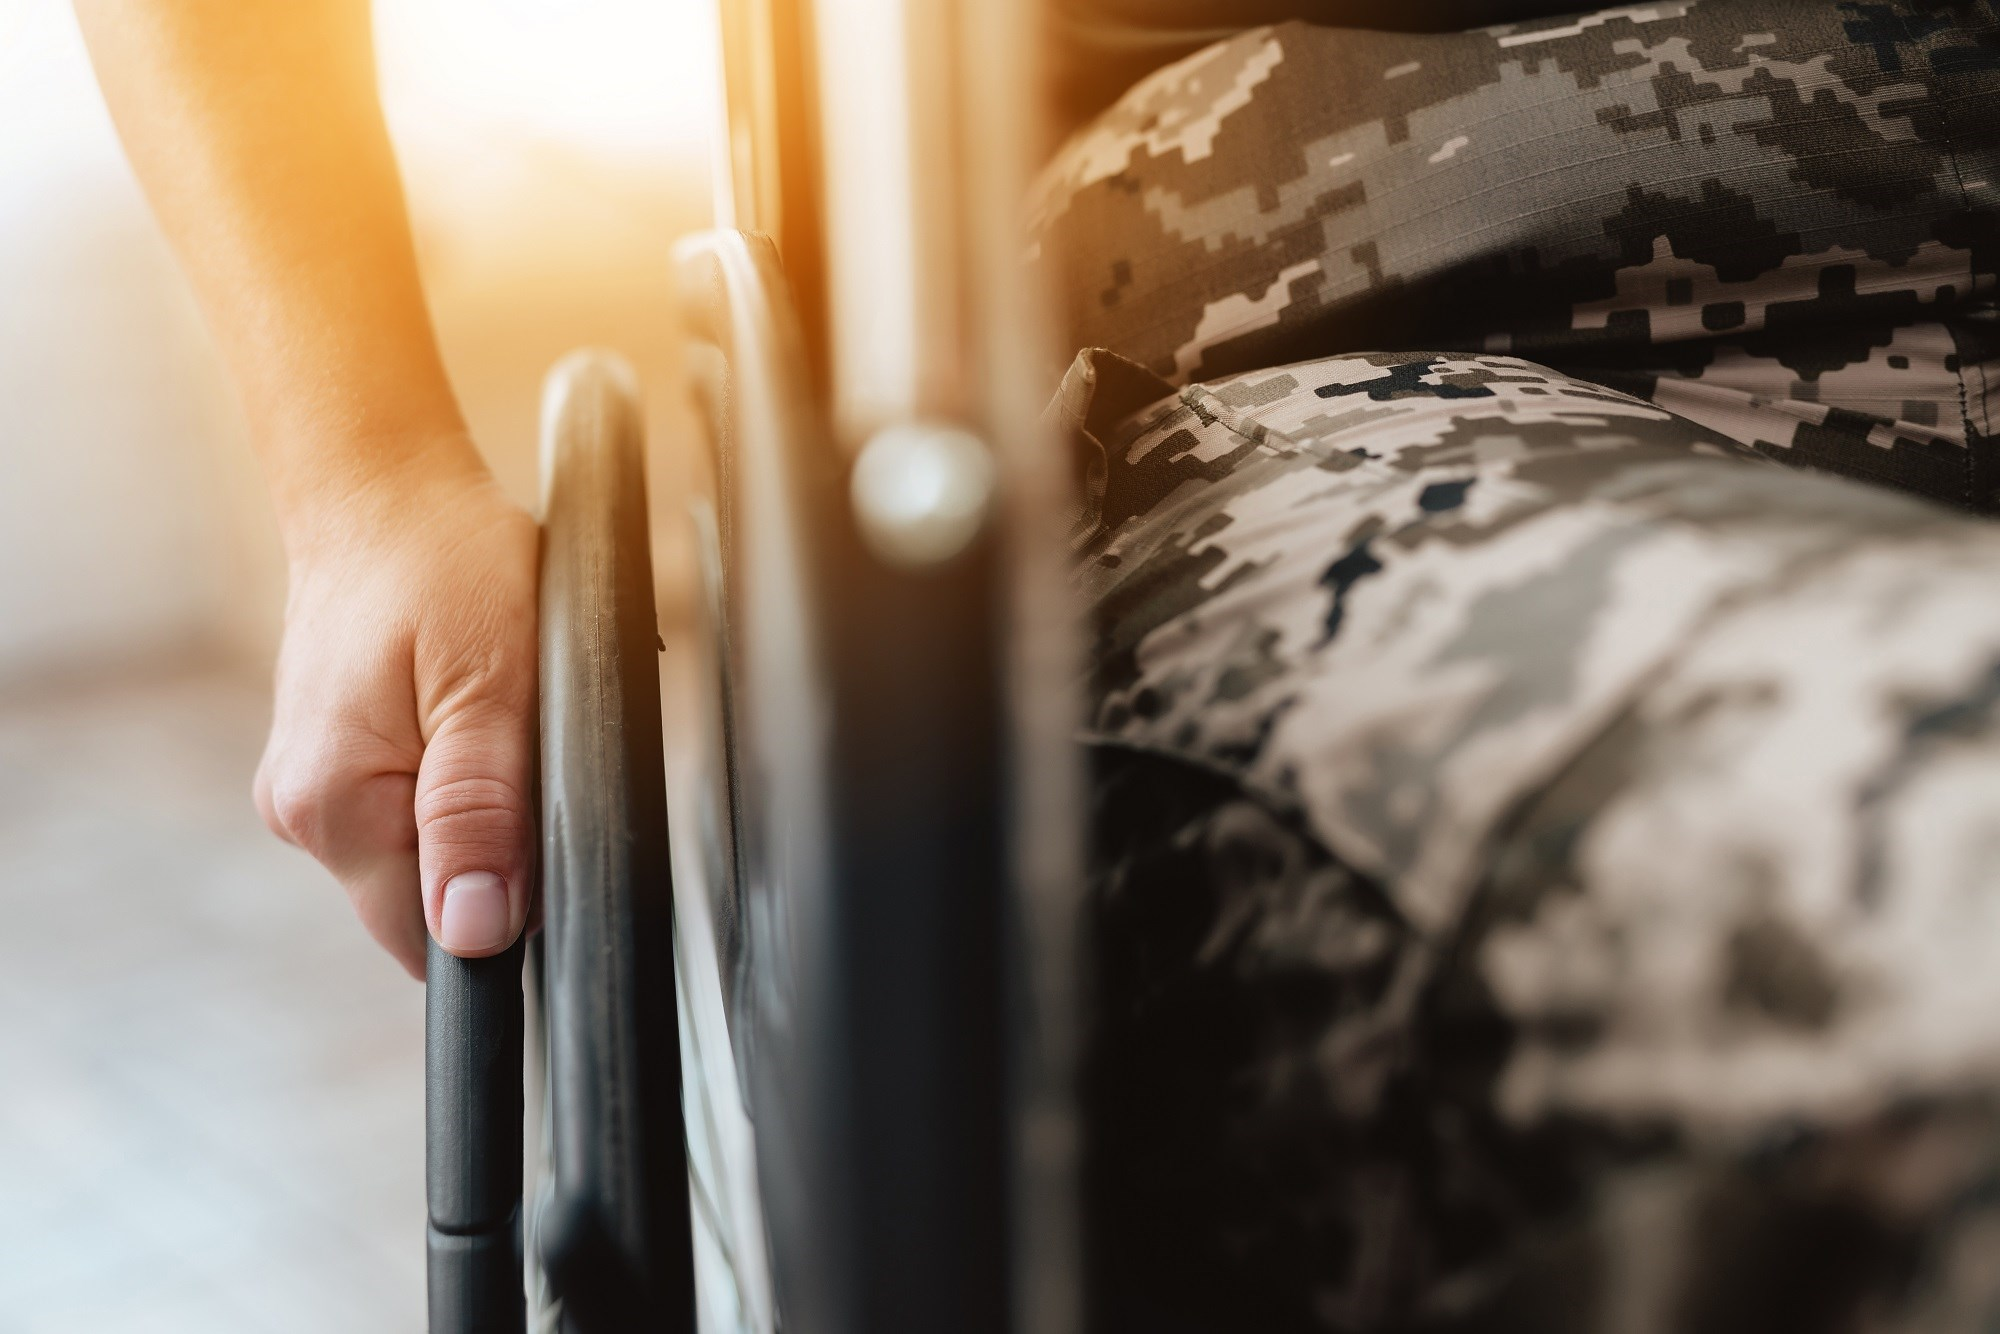 As services and facilities are eliminated, the VA's ability to operate as a health care provider could be diminished.